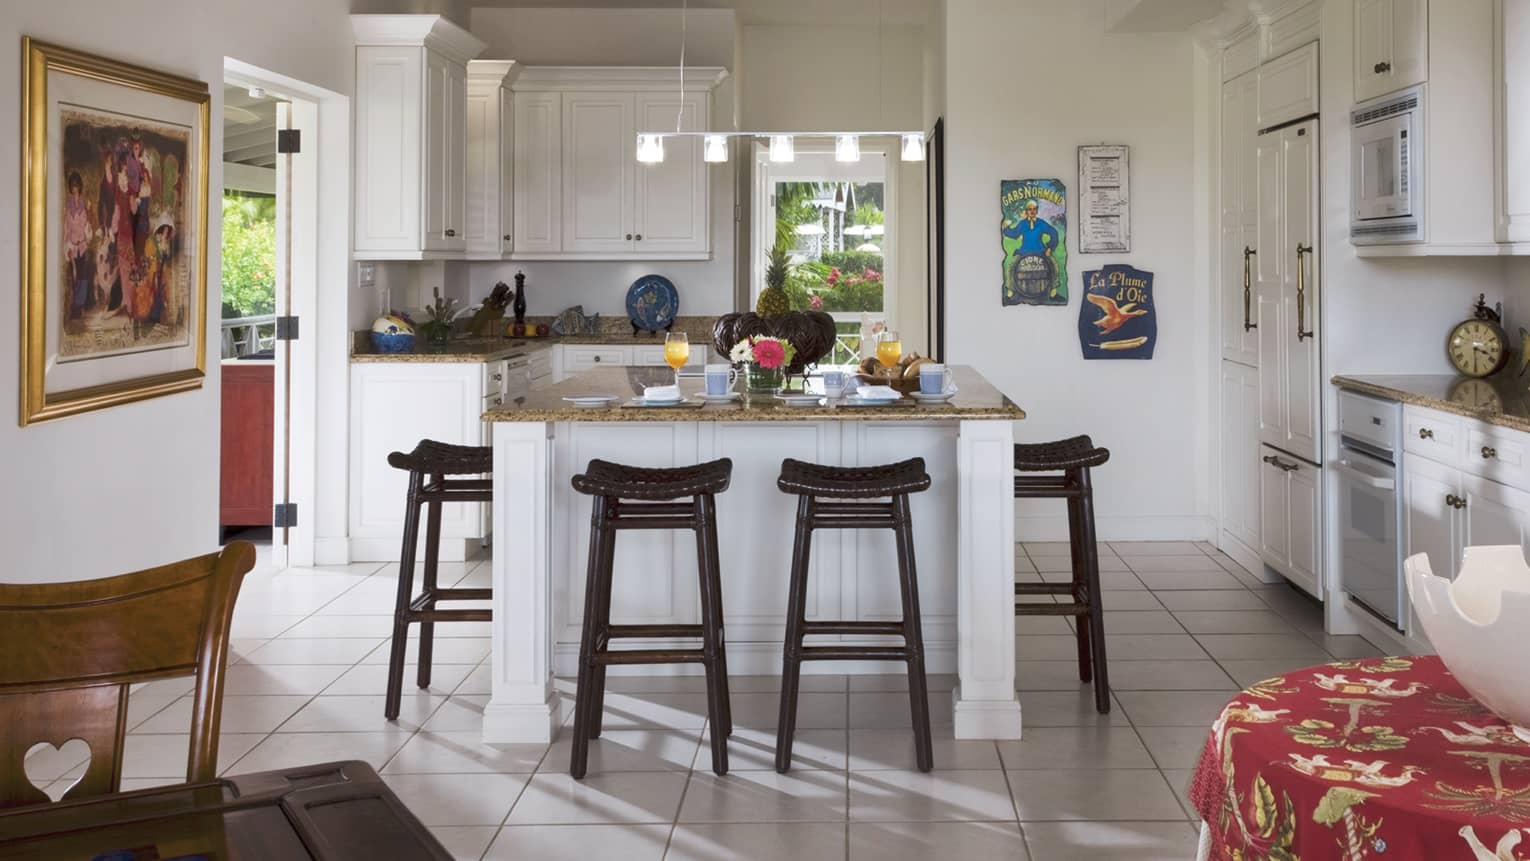 Palm Grove Residence white kitchen, island counter lined black stools